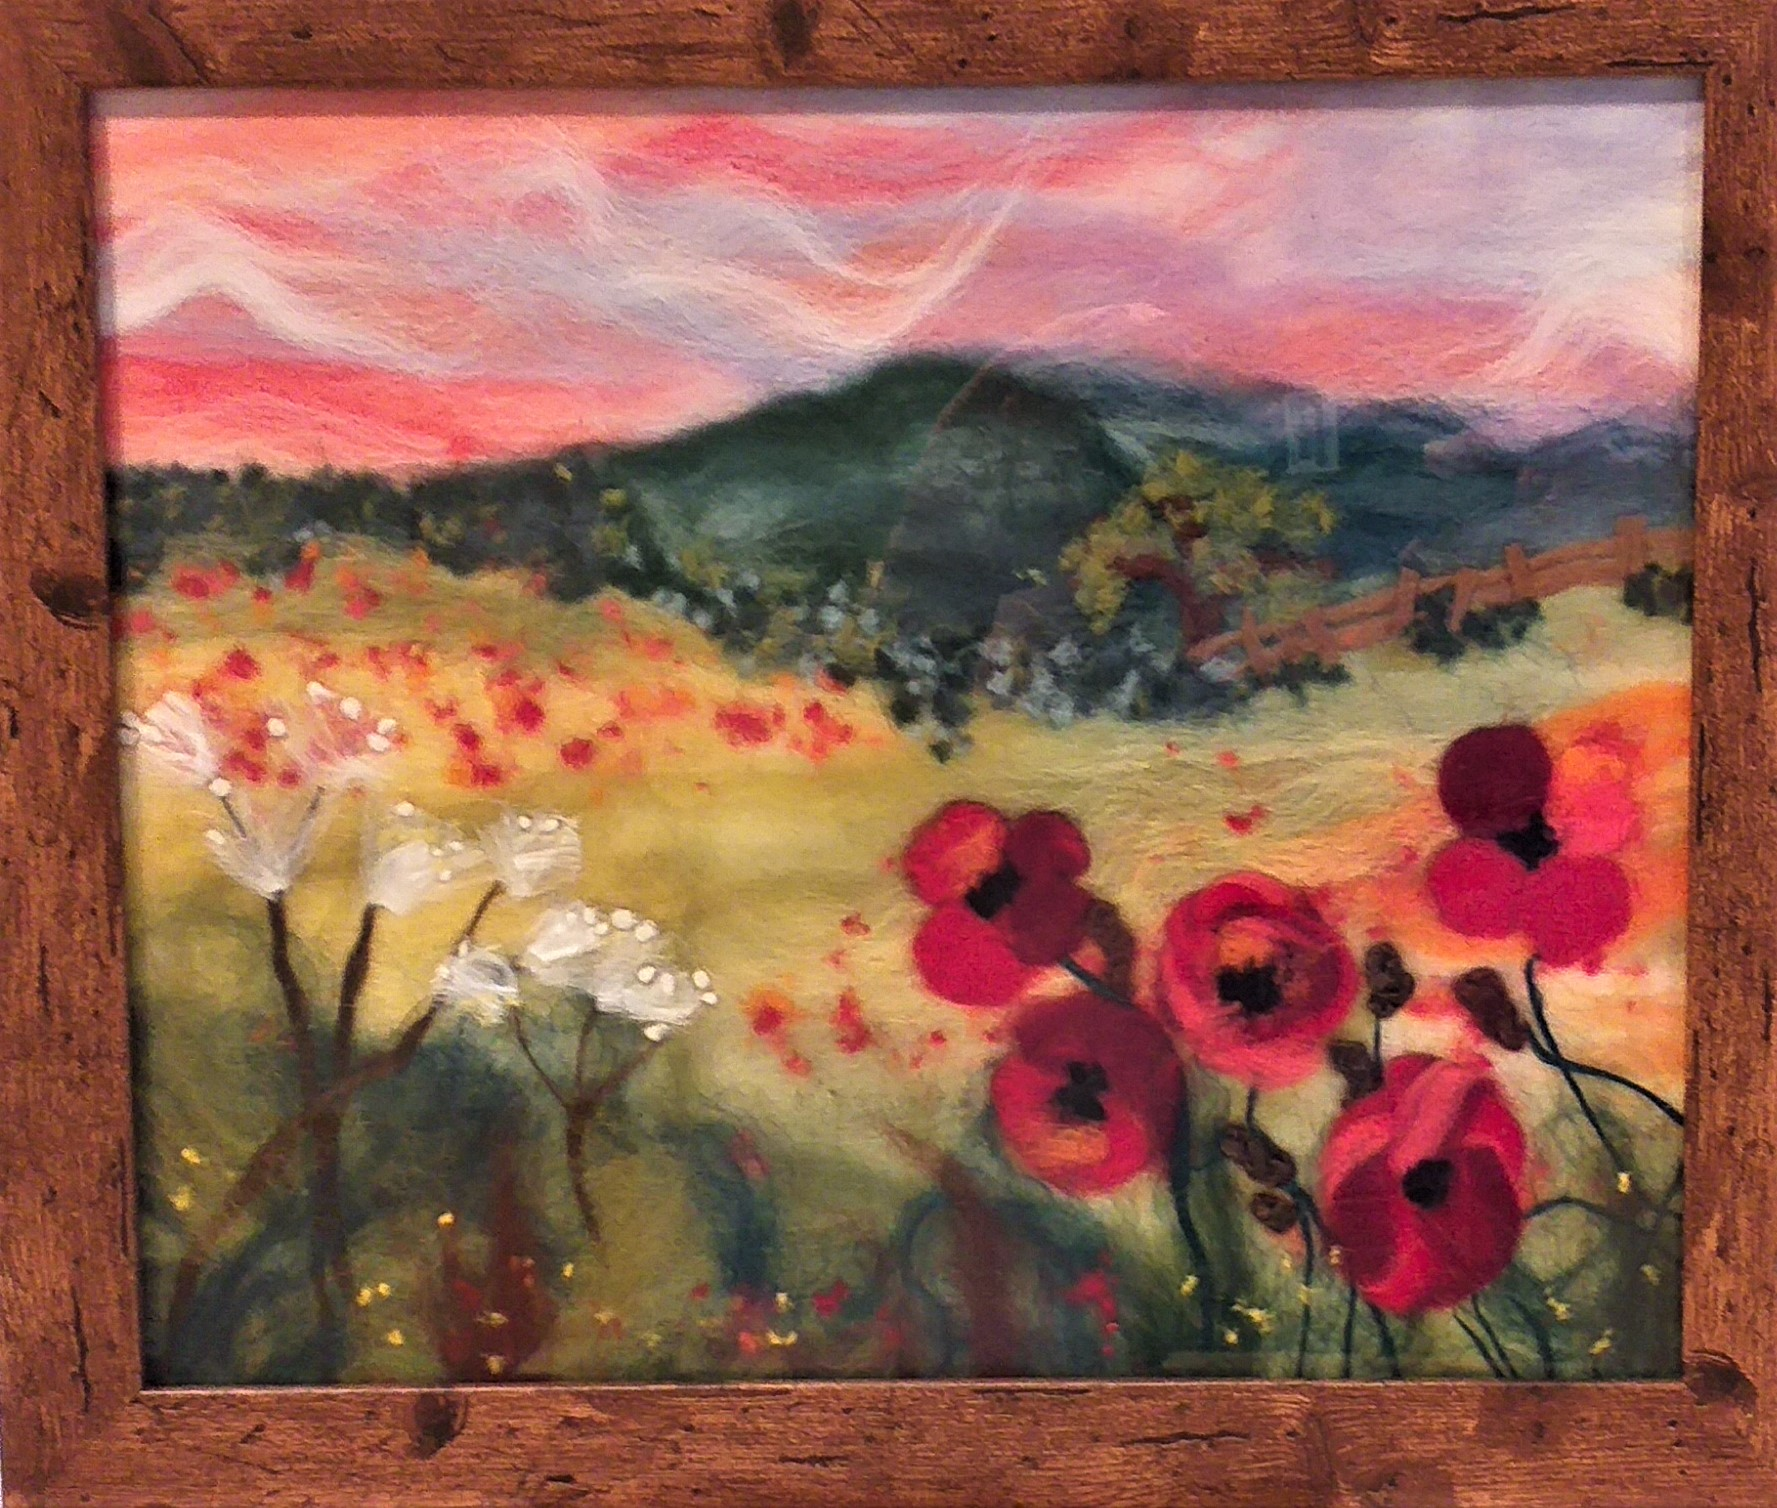 Wool fibre painting with experienced artists at Bevere Gallery in Worcester